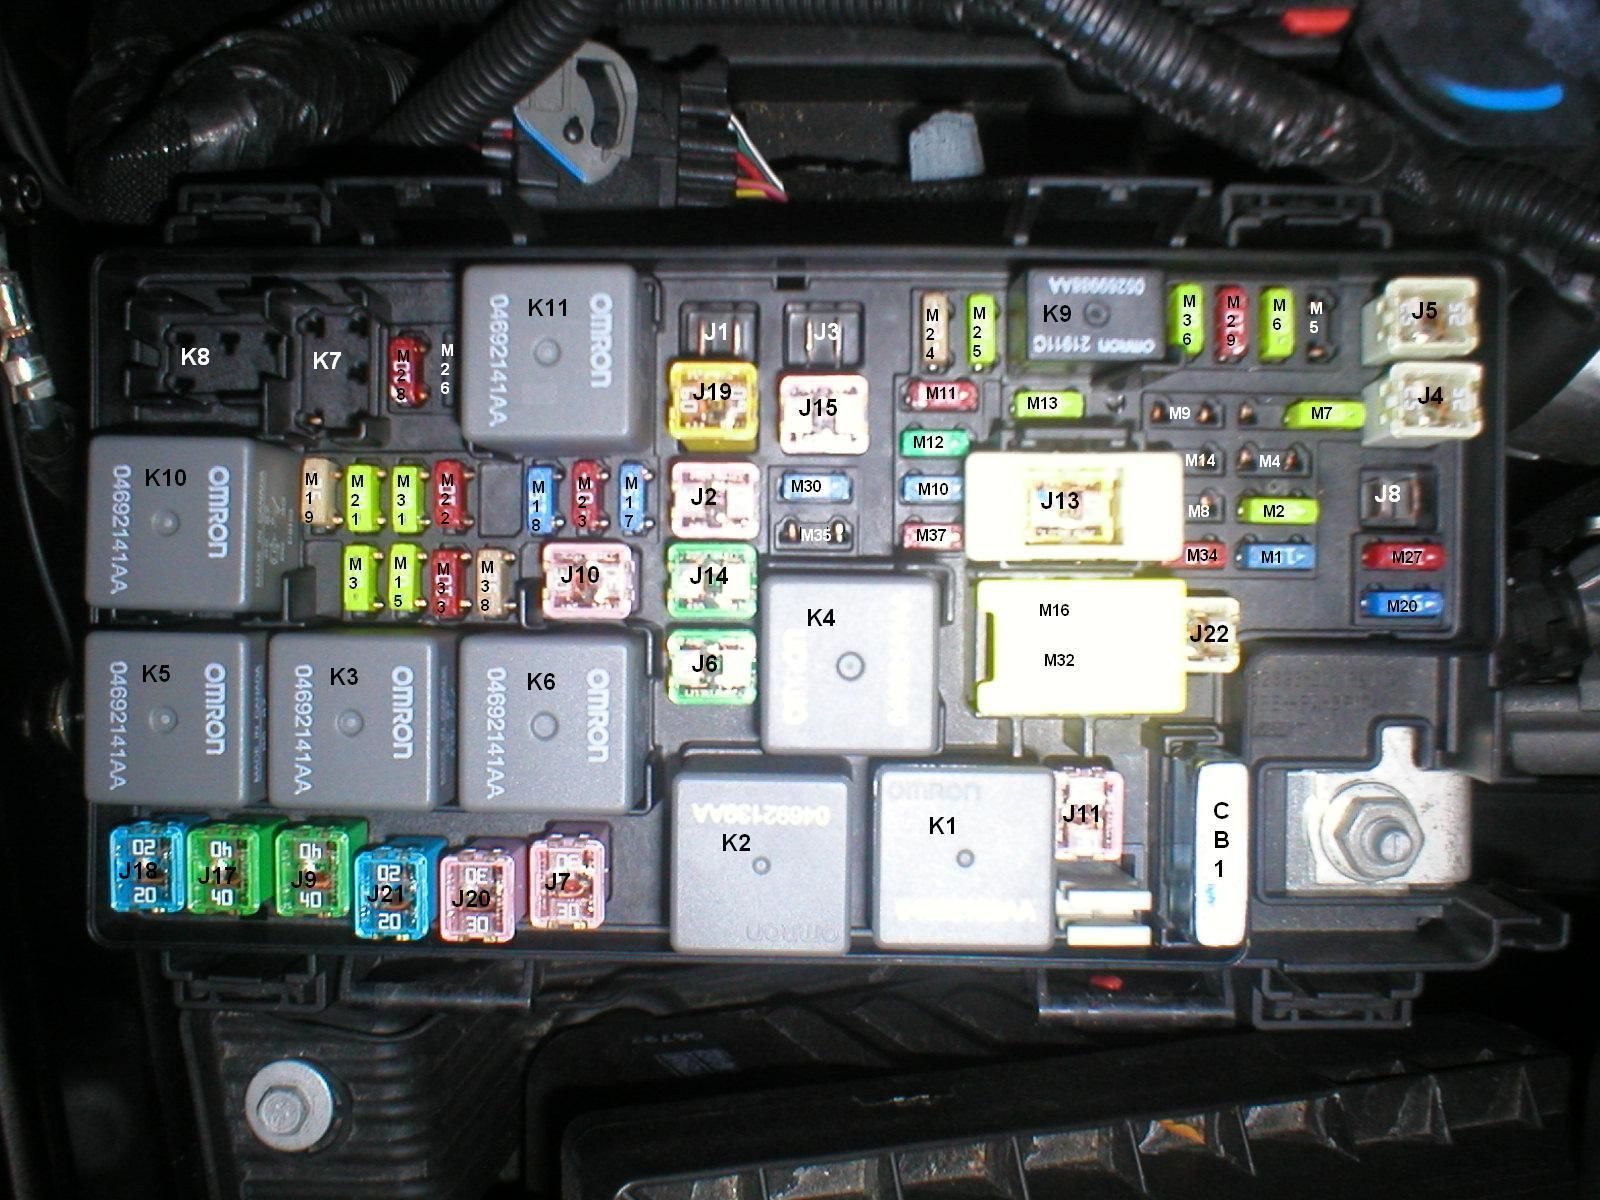 e14168e4d068a342b0792c6b4c75a229 jeep jk fuse box map layout diagram jeepforum com just empty 2004 Jeep Fuse Box Diagram at readyjetset.co